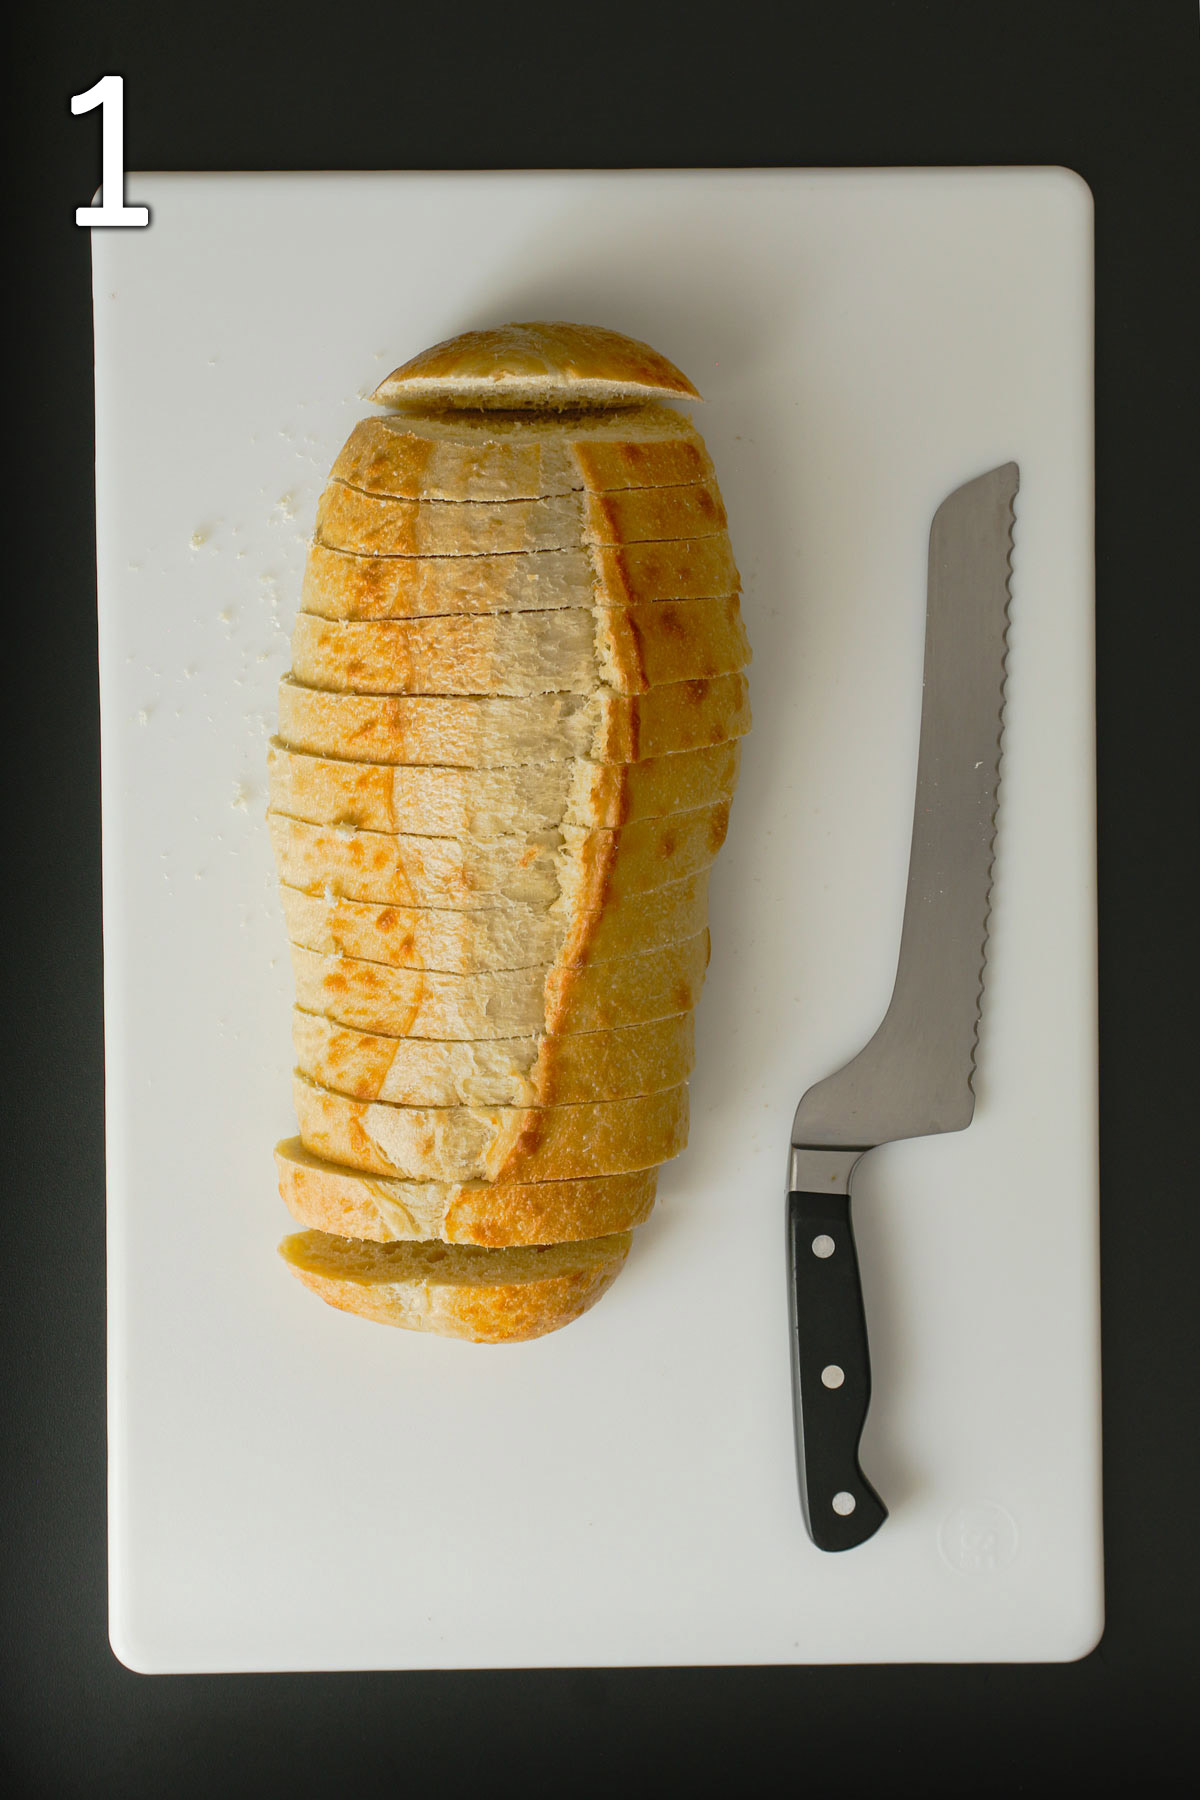 bread loaf cut into slices on white board next to bread knife.